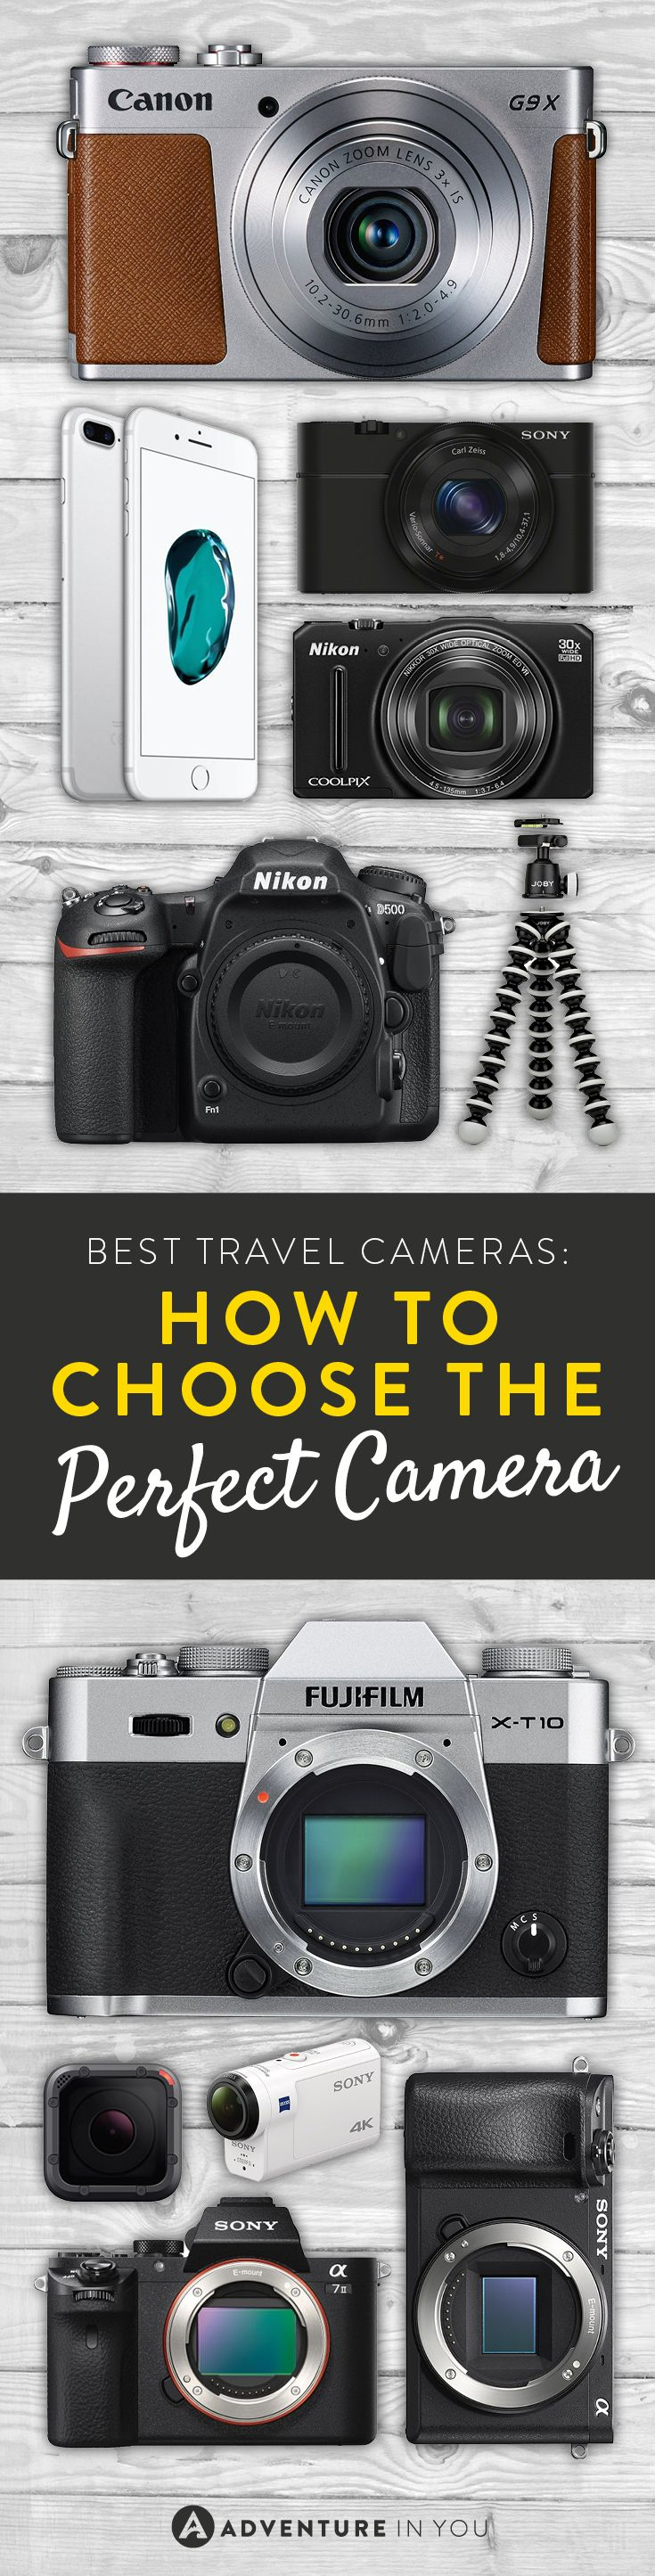 Best Travel Cameras | Recommendations on the best mirrorless, point and shoot, action, or DSLR camera to take traveling with you.  Get wholesale hotel rates on www.HotelsDifferently.com! Your source for luxury discount hotels.